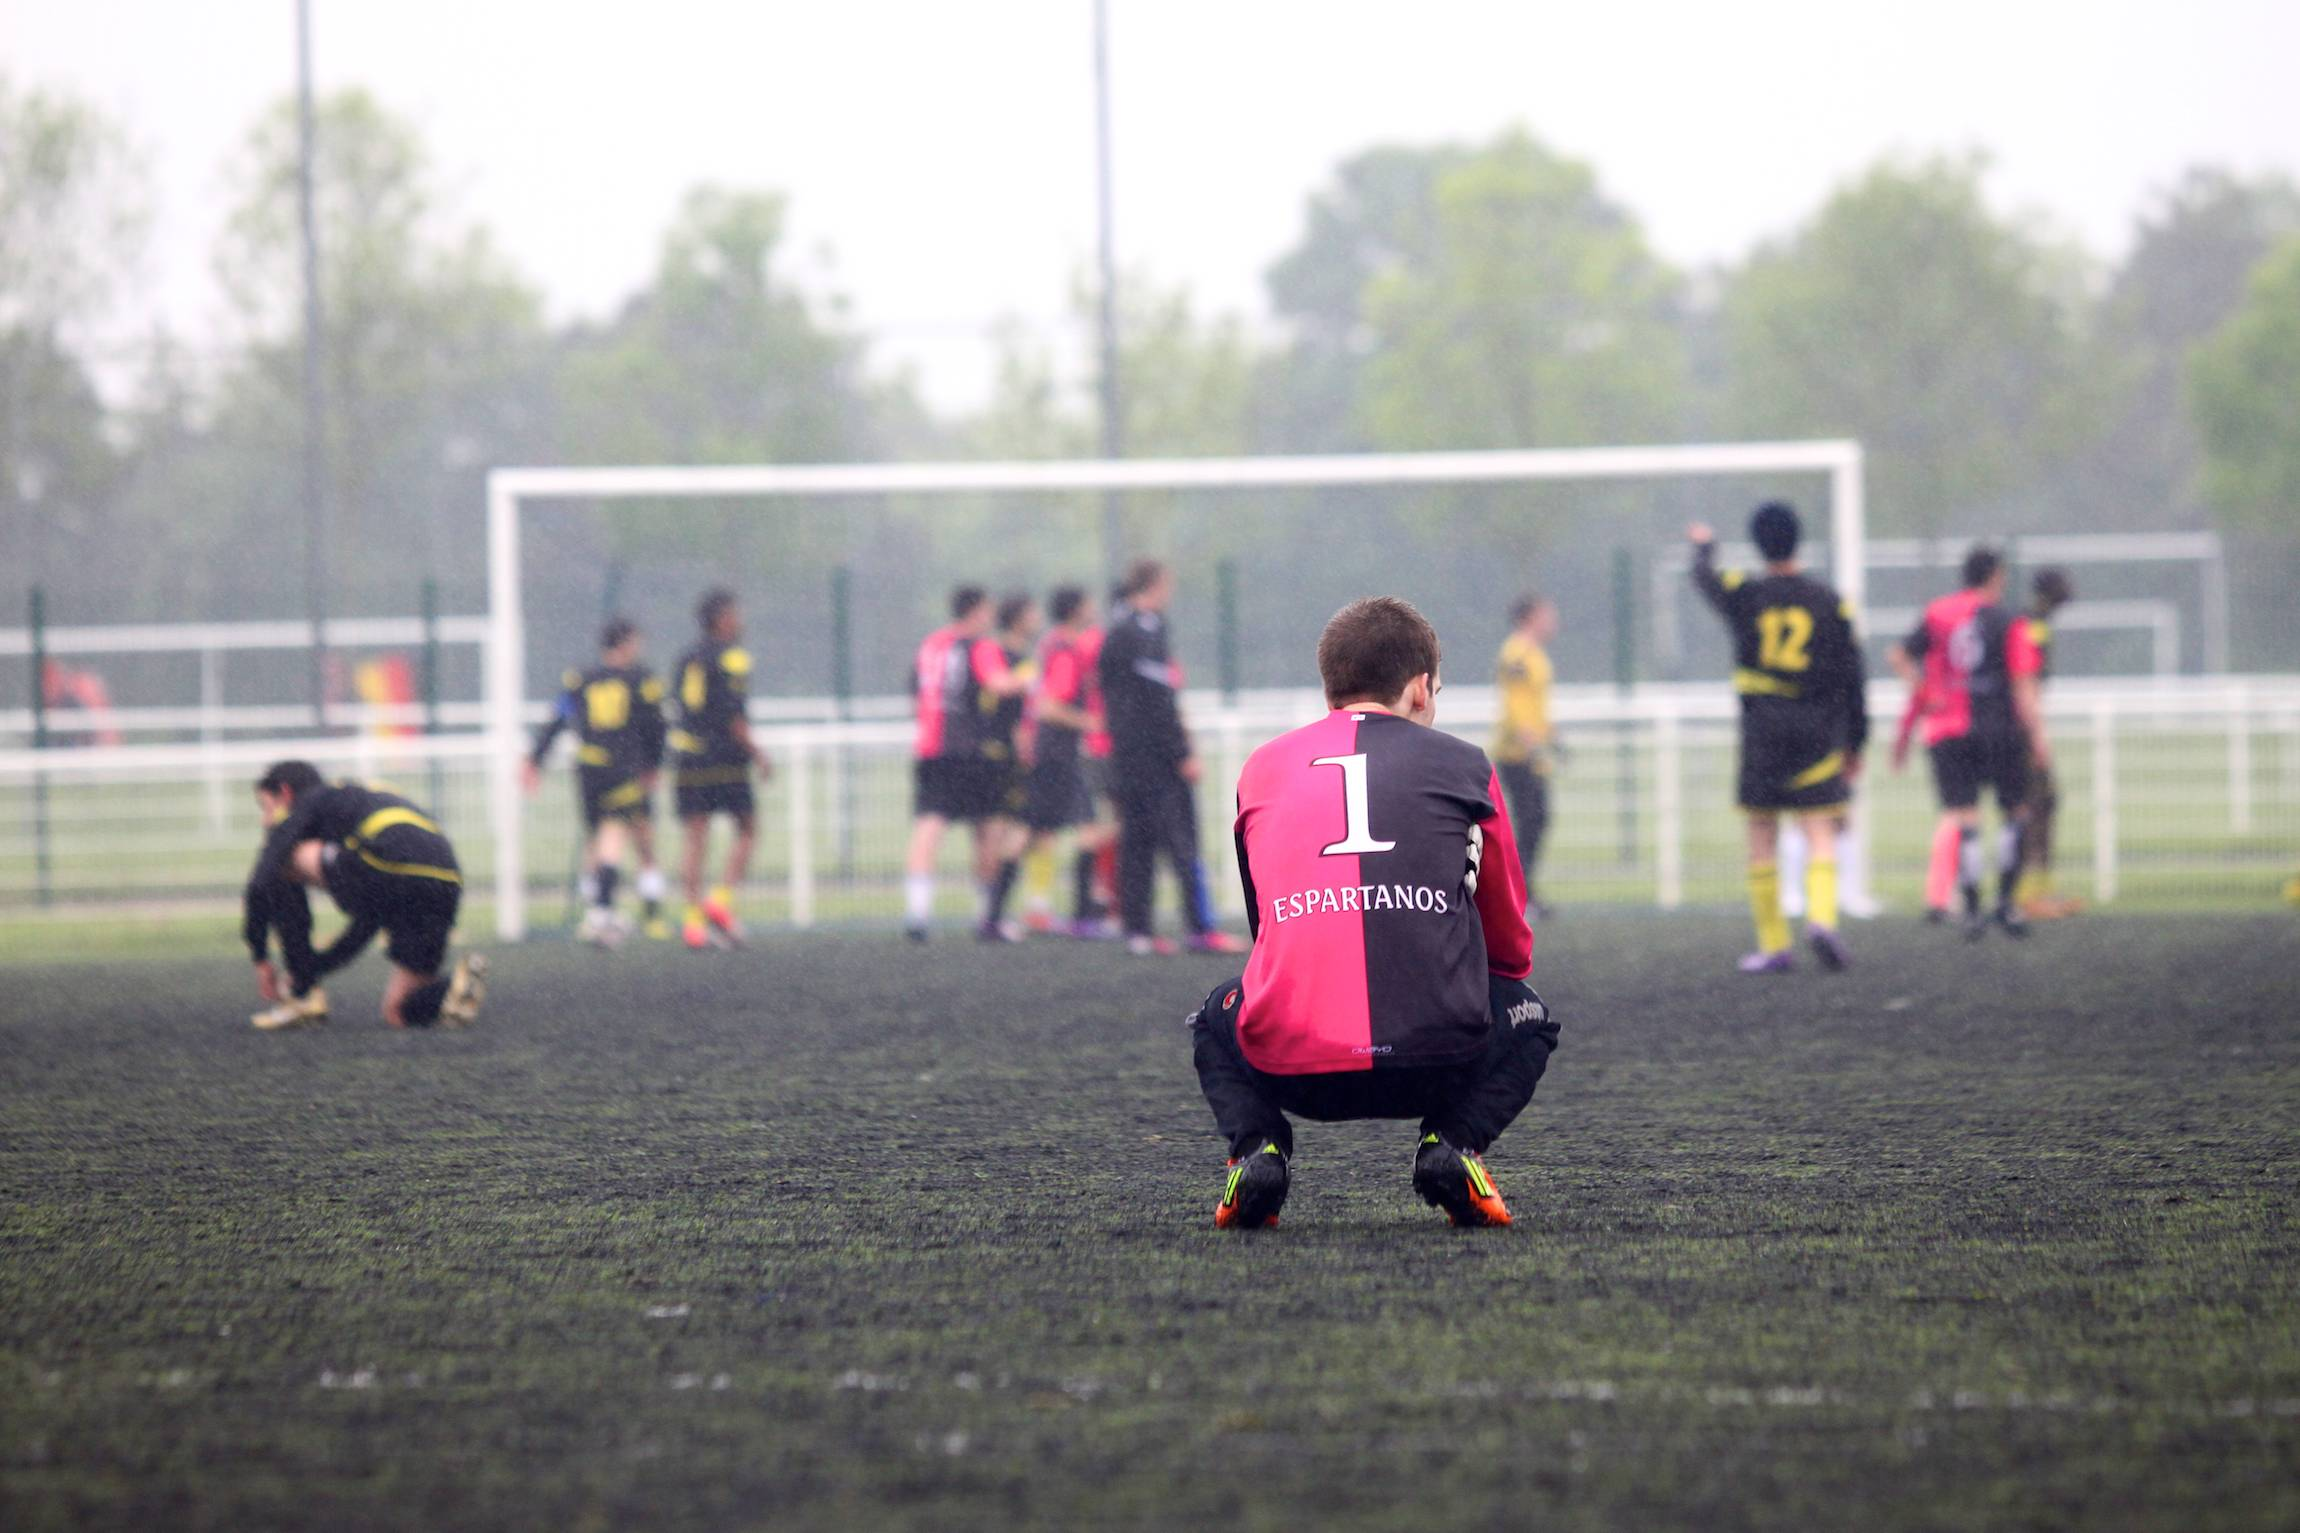 The goal keeper of Poitiers sits on the floor during a inter-collegiate competition in Reims, France, Mai 20, 2014.